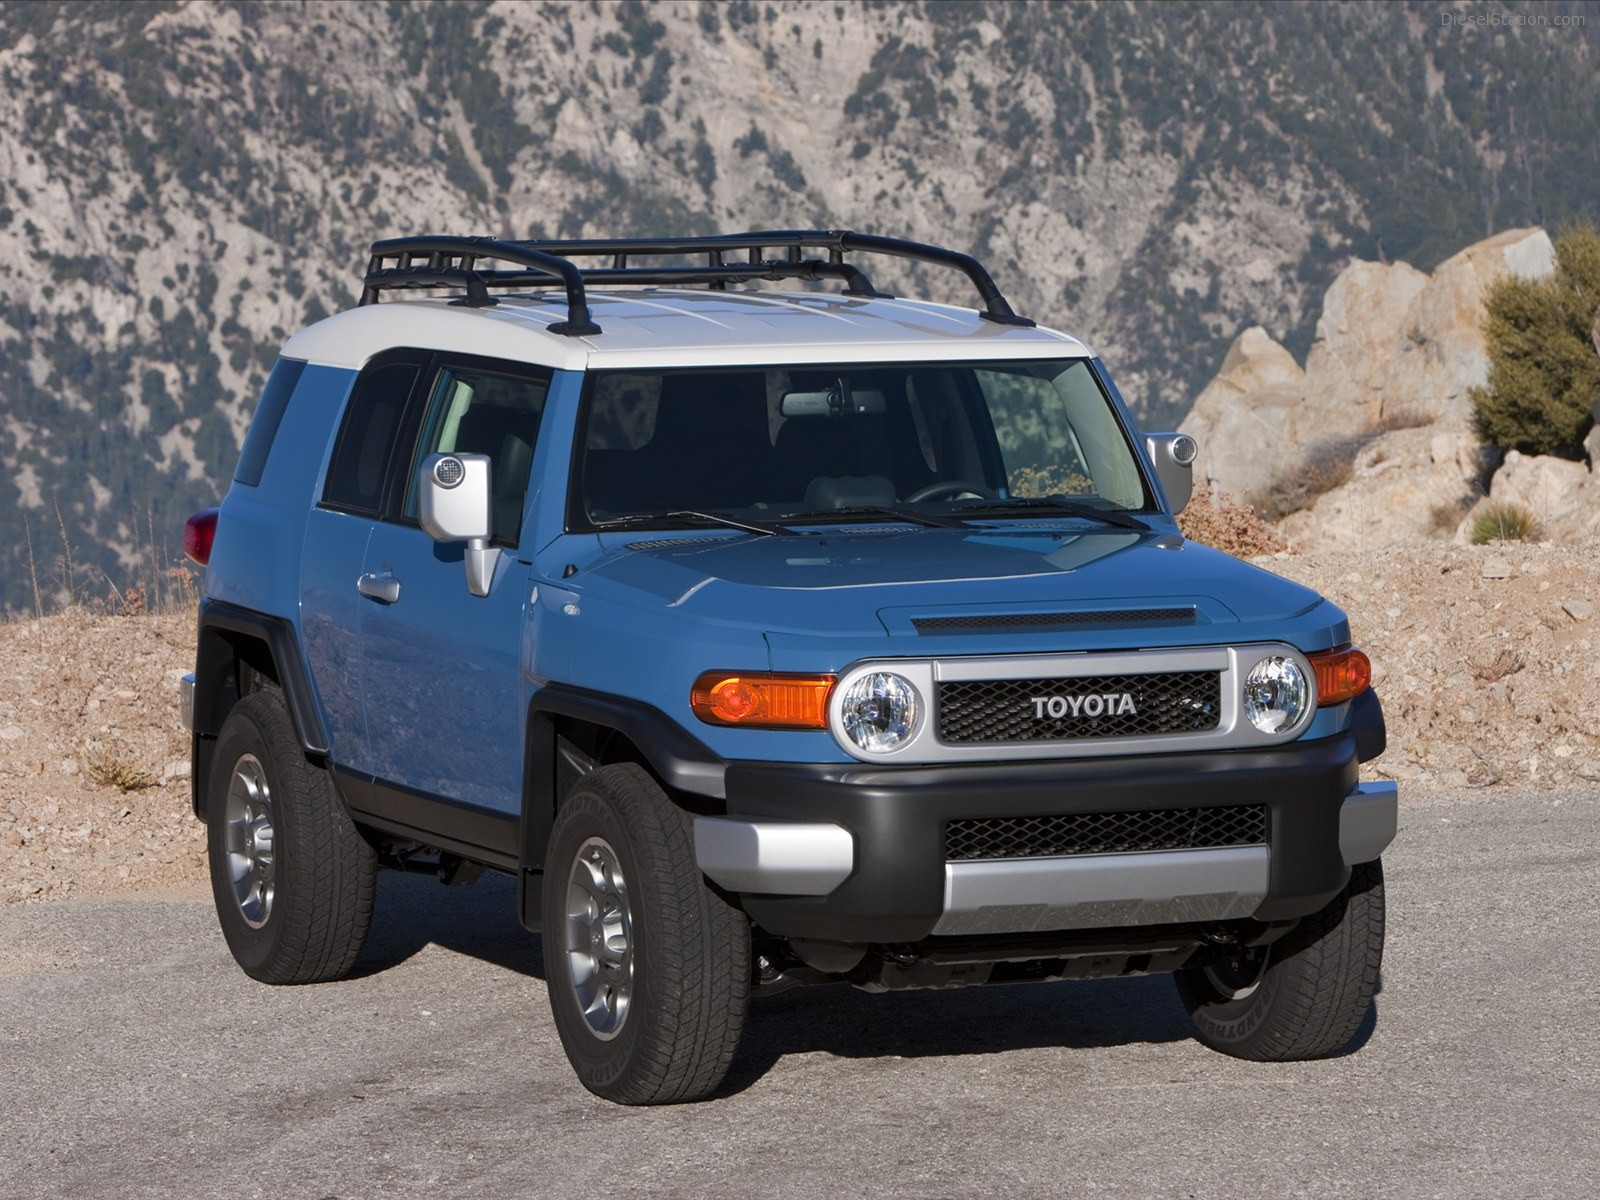 2019 Toyota FJ Cruiser Concept photo - 2